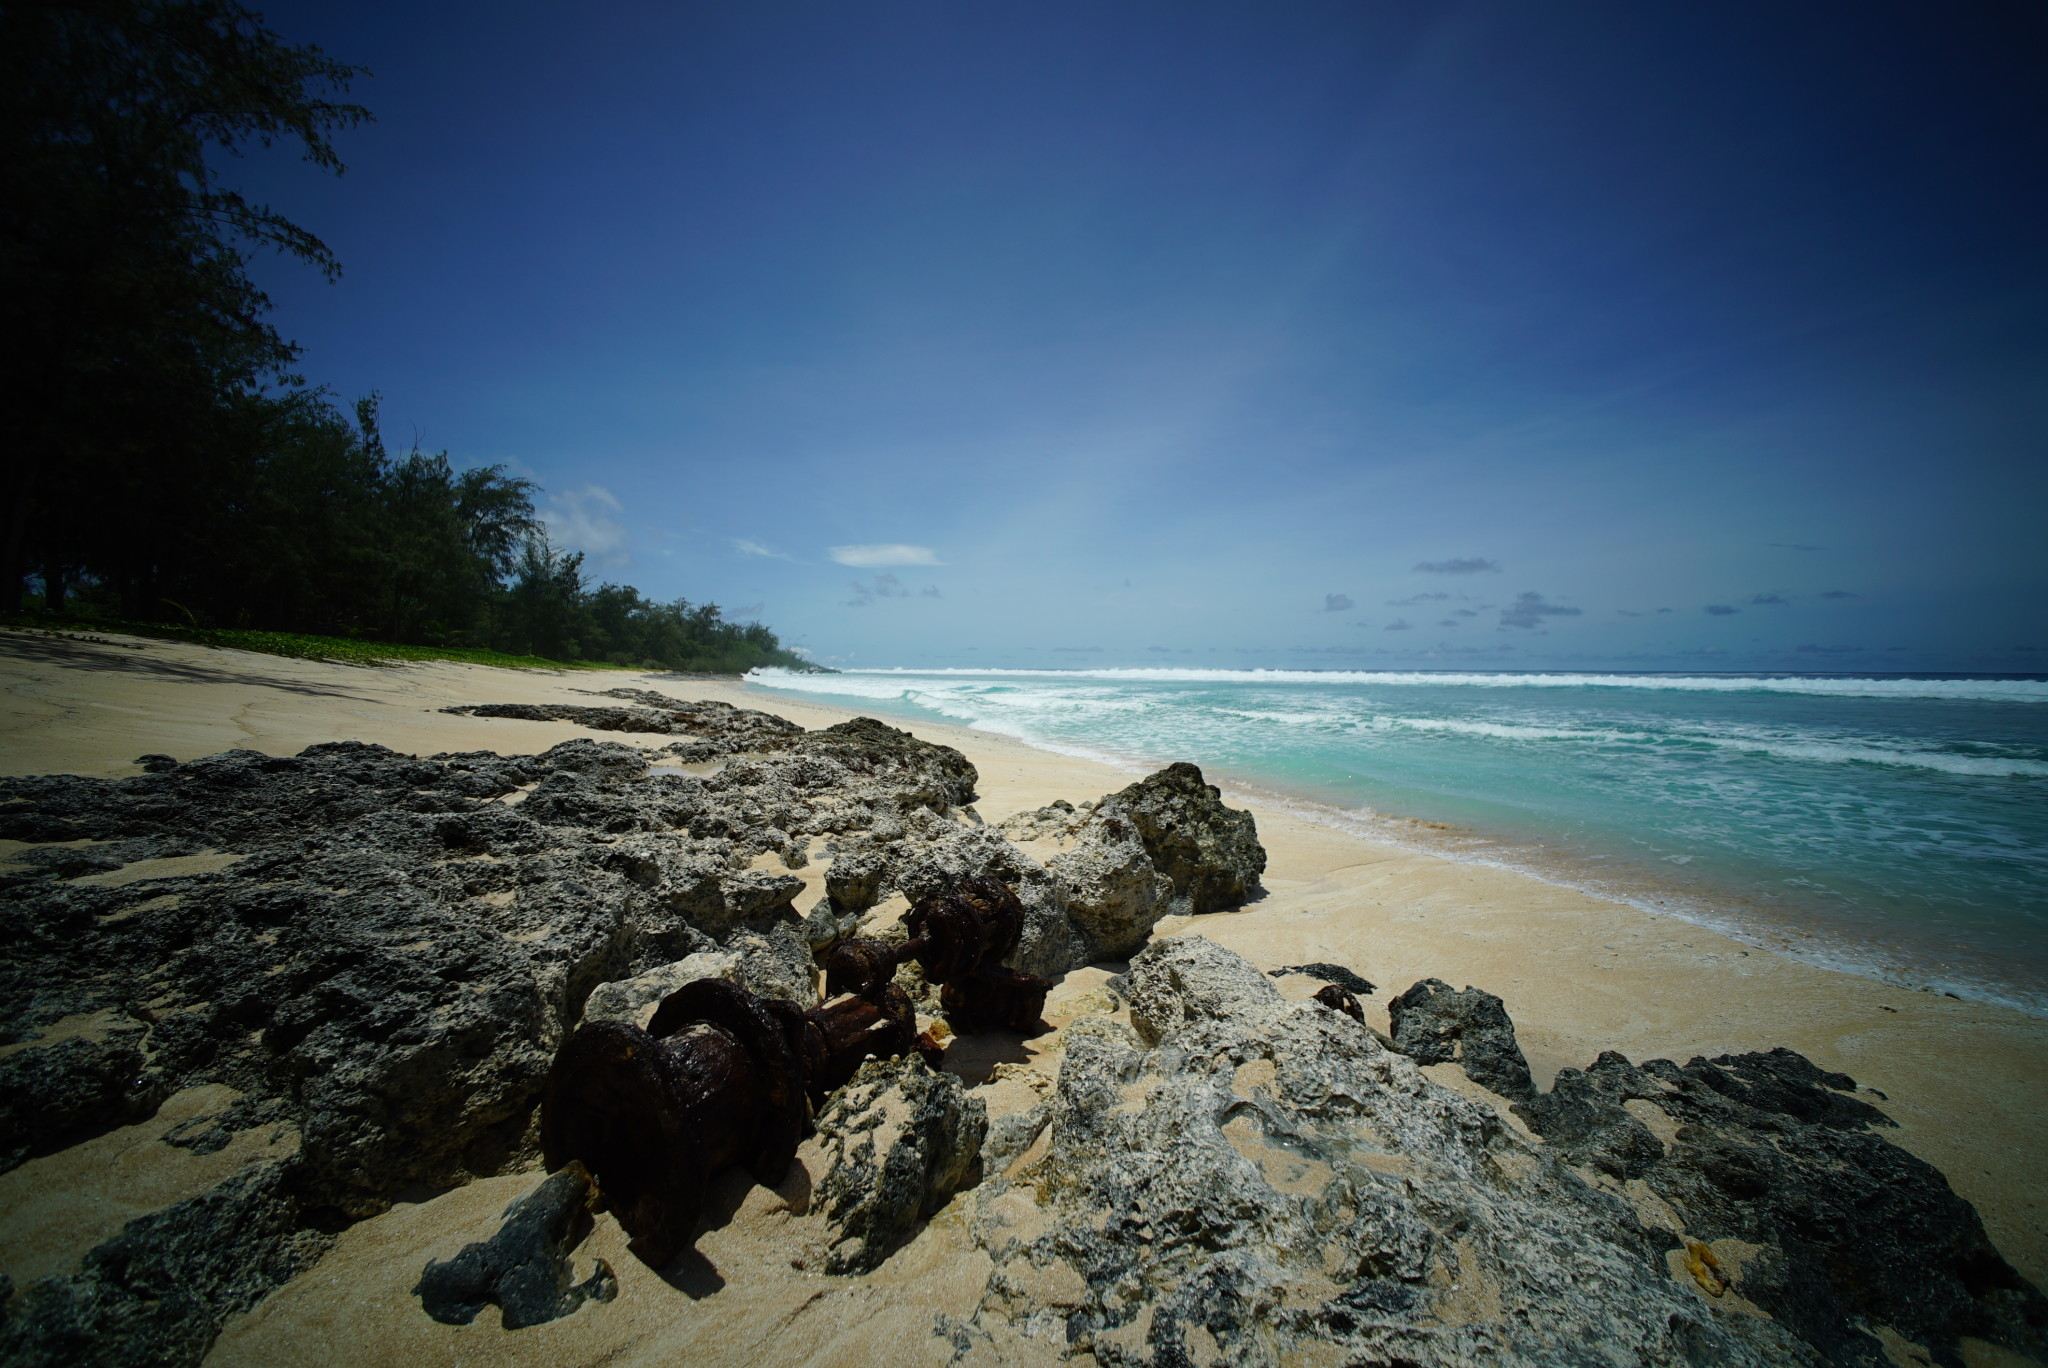 The military wants to use a beach called Unai Chulu for amphibious landing practice, which would destroy over 10 acres of coral reef.